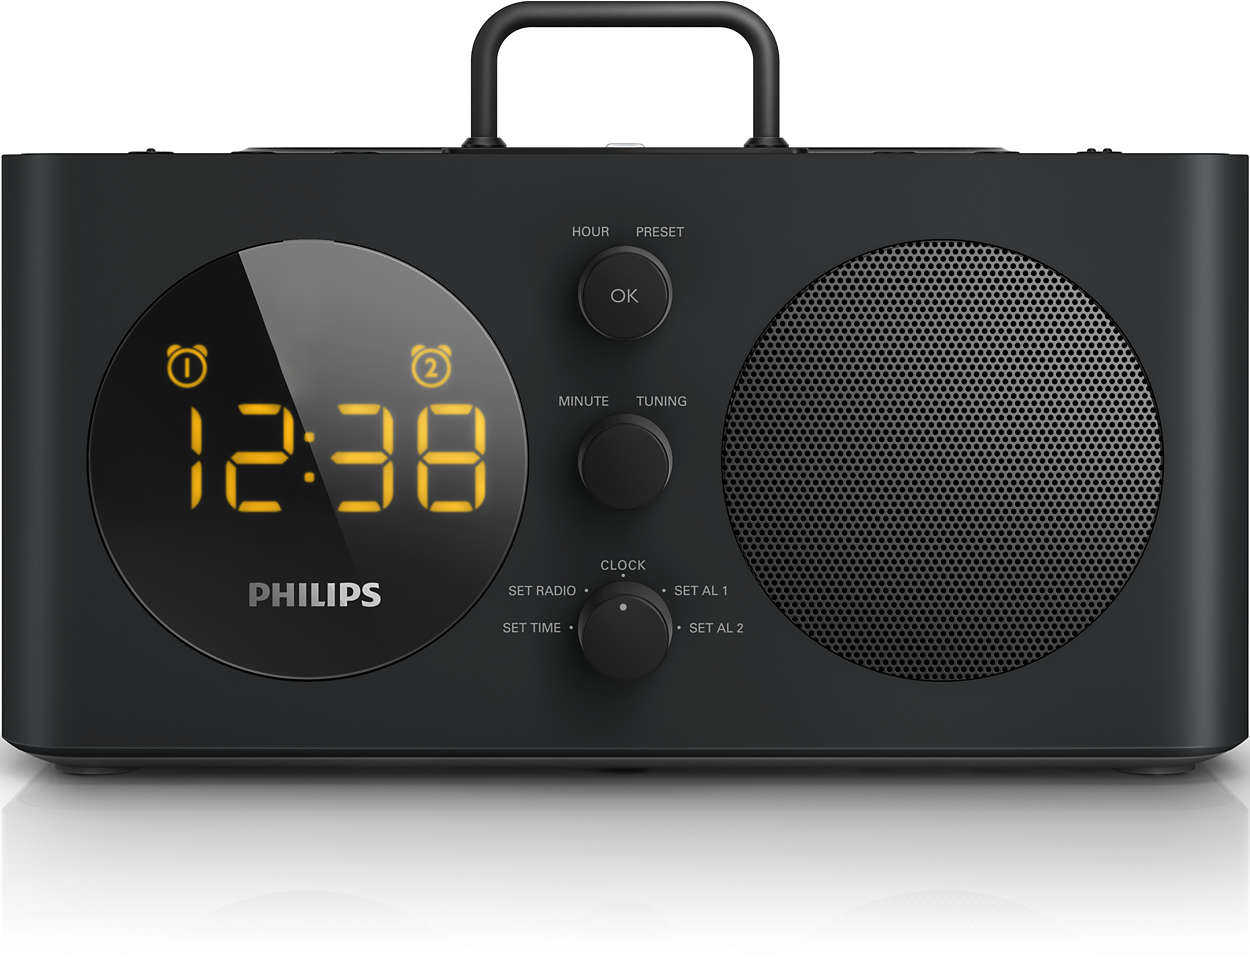 alarm clock radio for ipod iphone aj6200db 98 philips. Black Bedroom Furniture Sets. Home Design Ideas